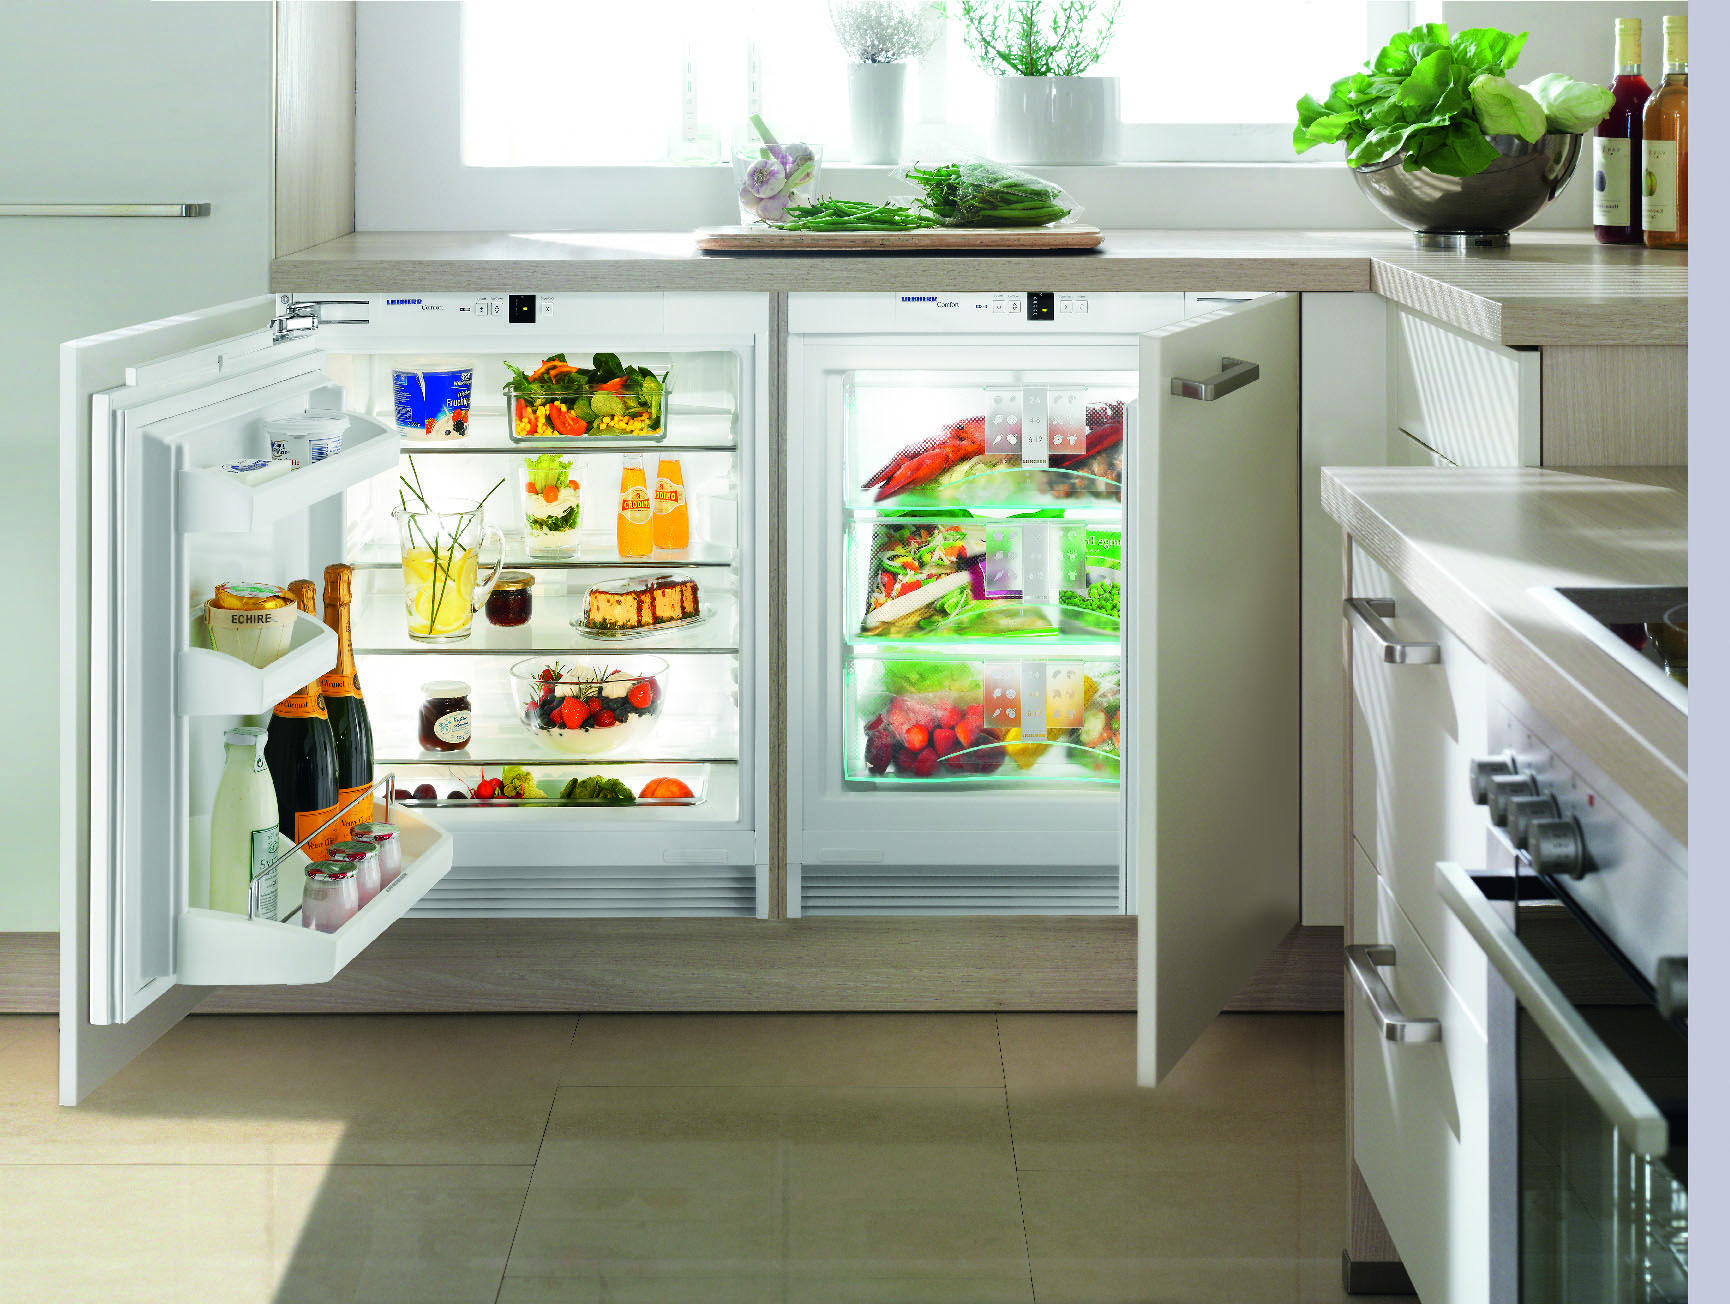 liebherr uik 1620(fridge) and uig 1313(freezer) | built-in